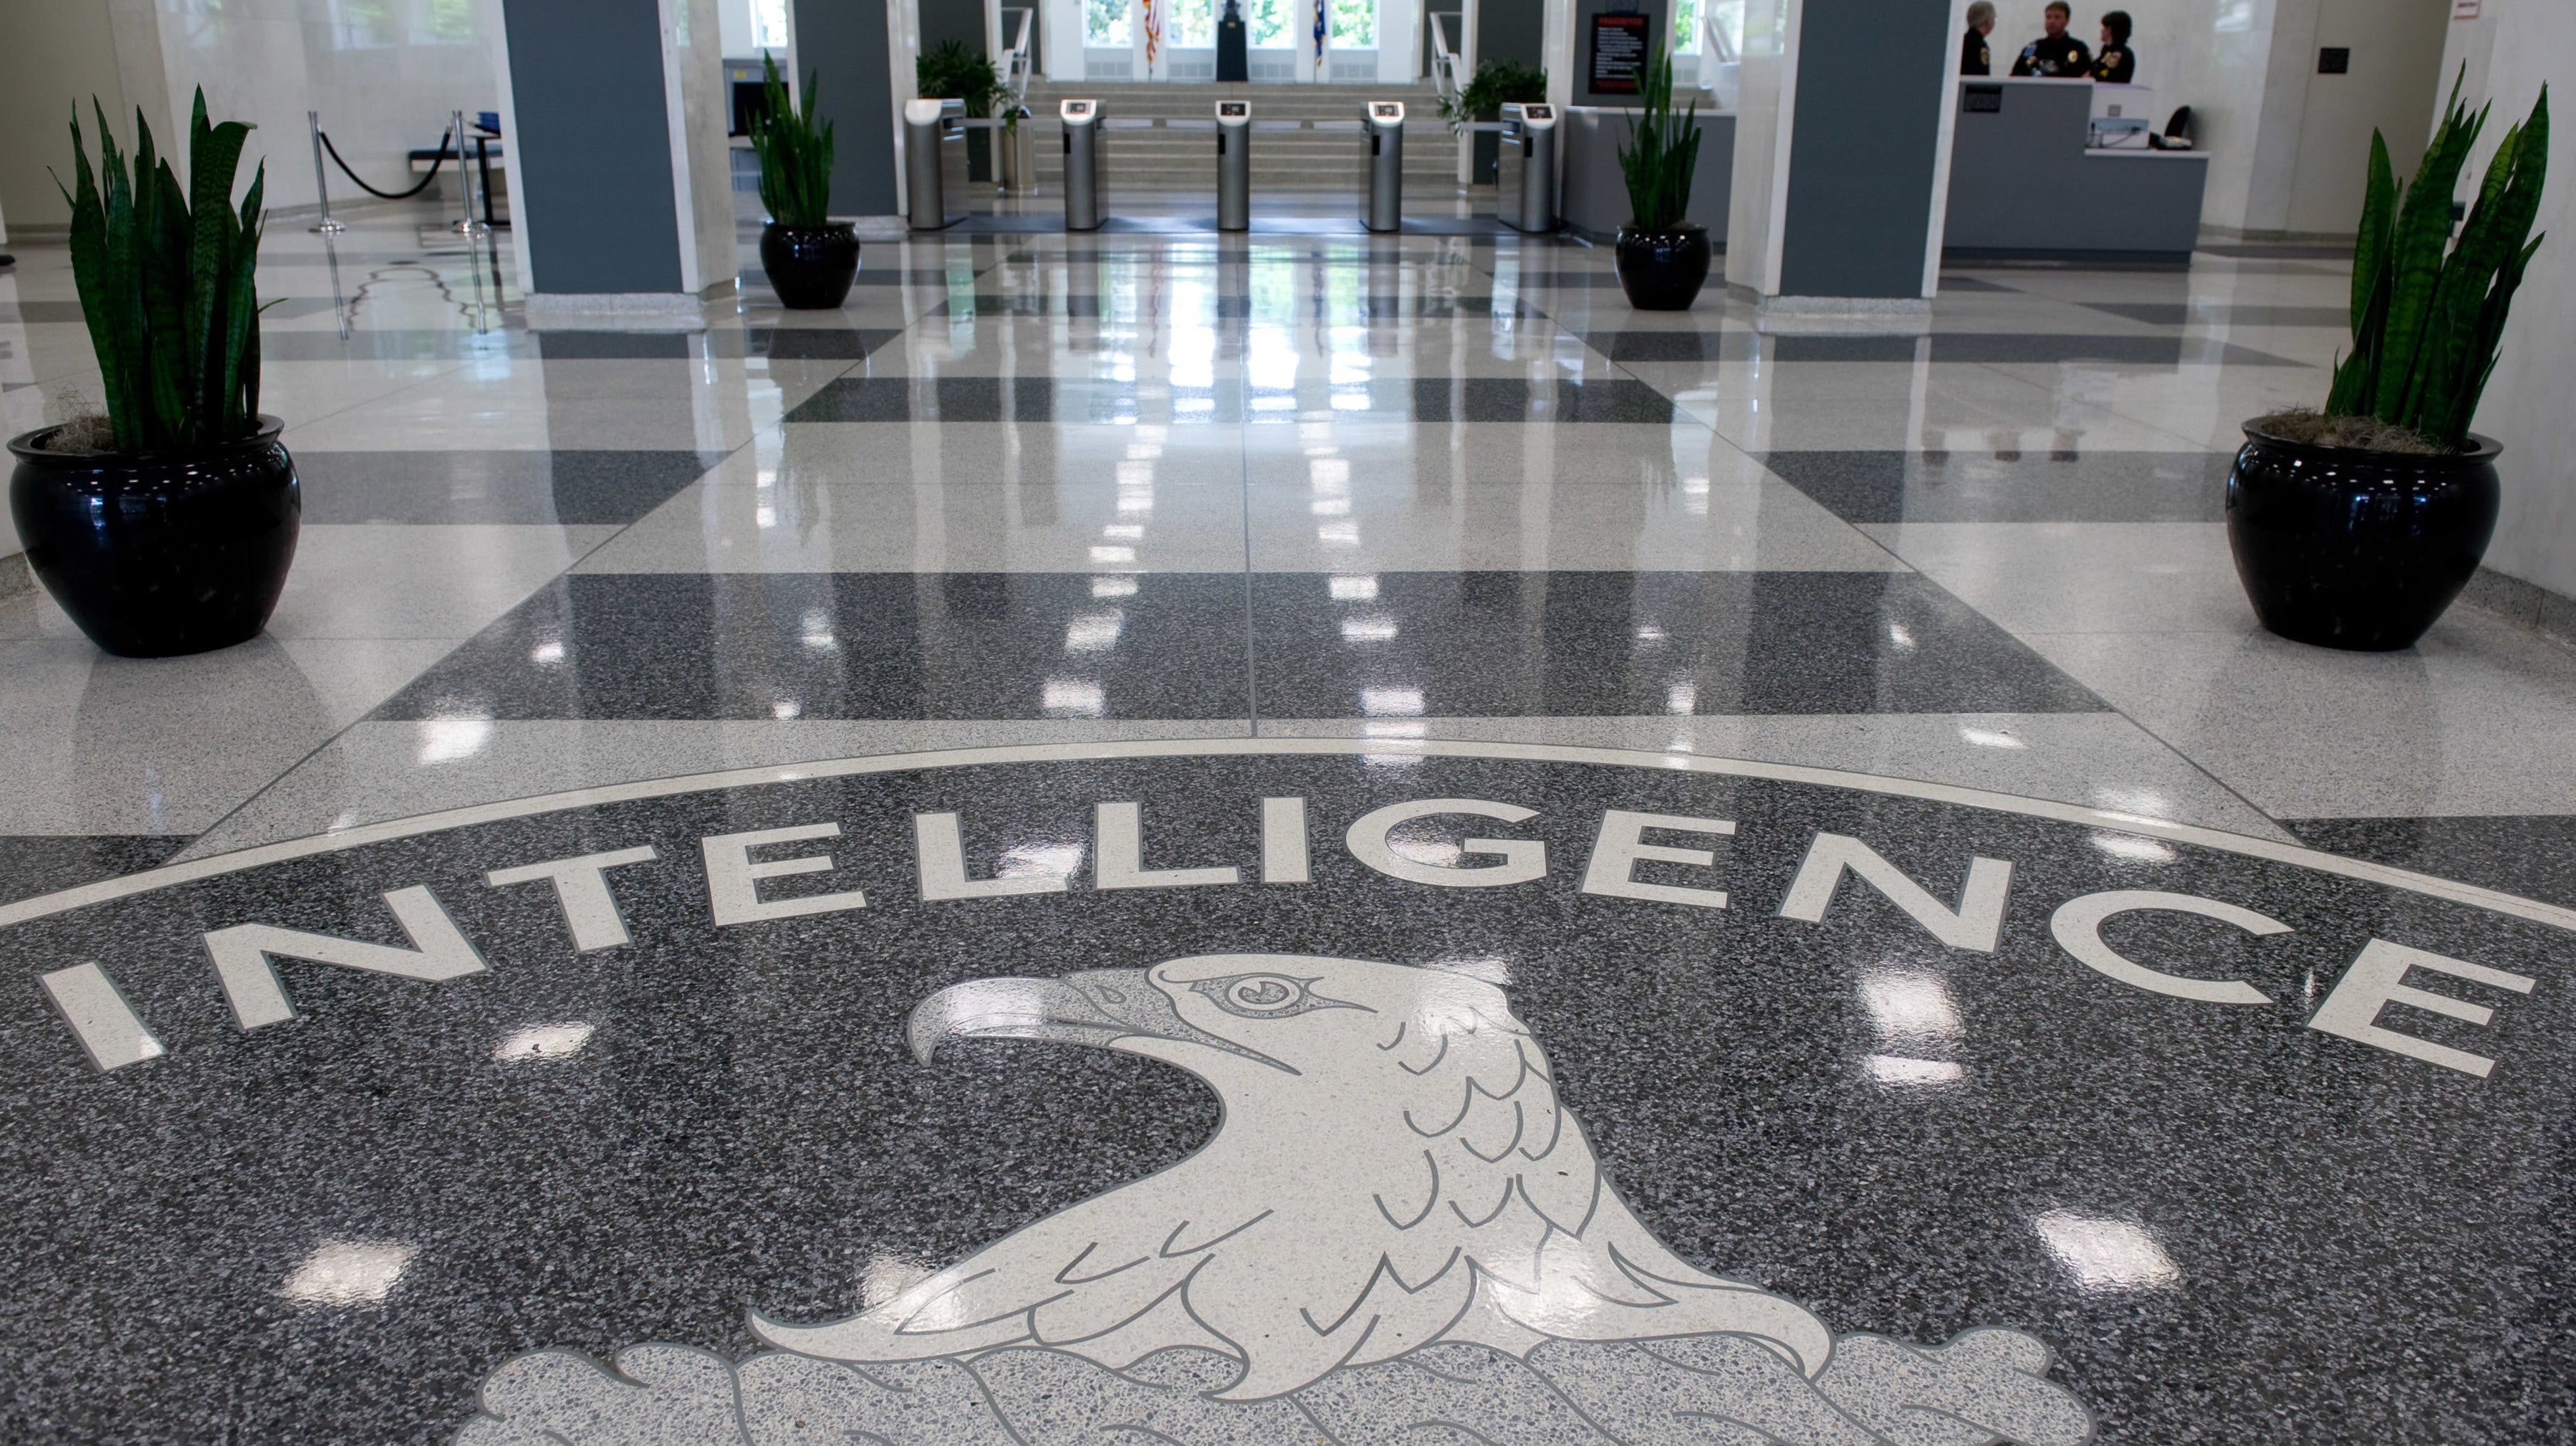 Swiss Government Files Criminal Complaint Over CIA's Decades-Long Global Encryption Racket